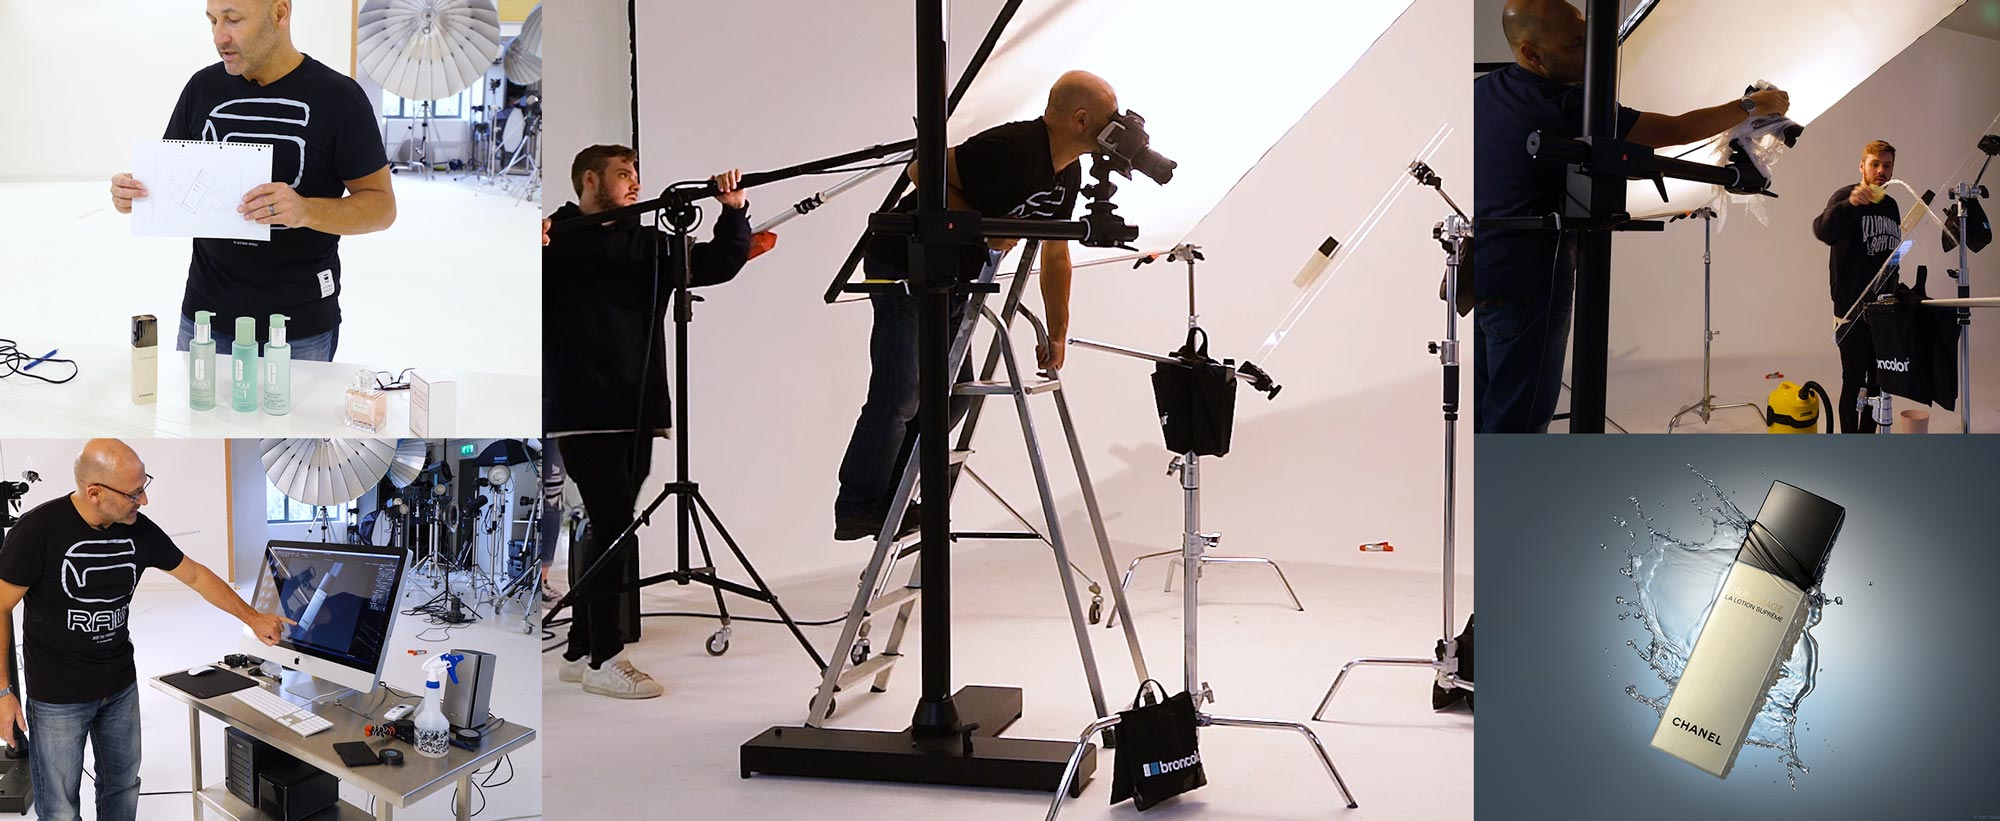 Commercial Photography Workflow